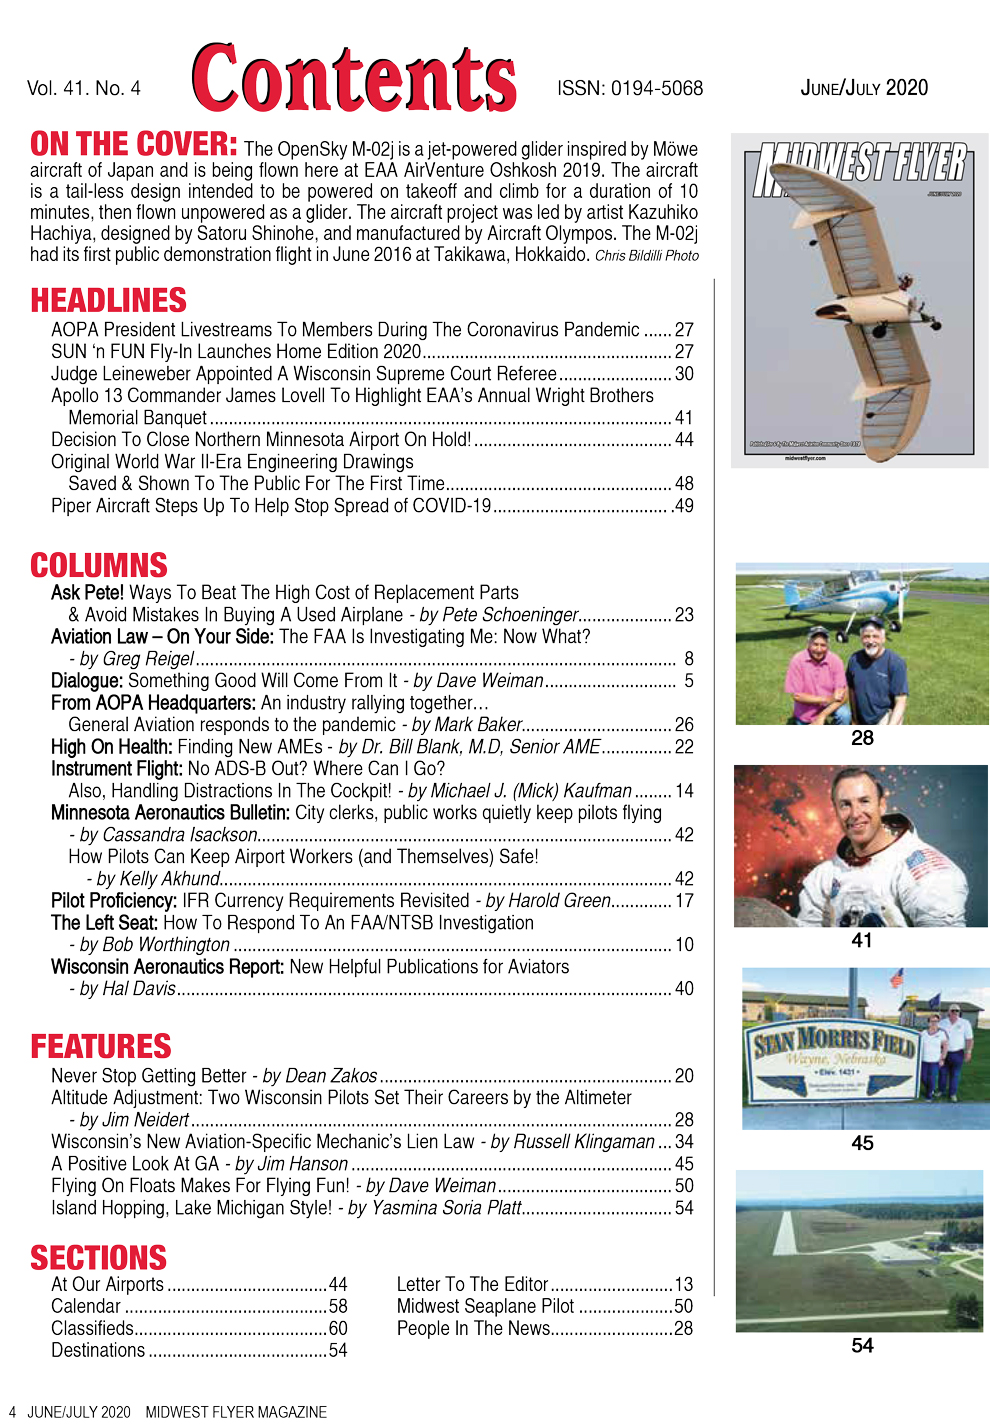 Midwest Flyer Magazine Contents - June/July